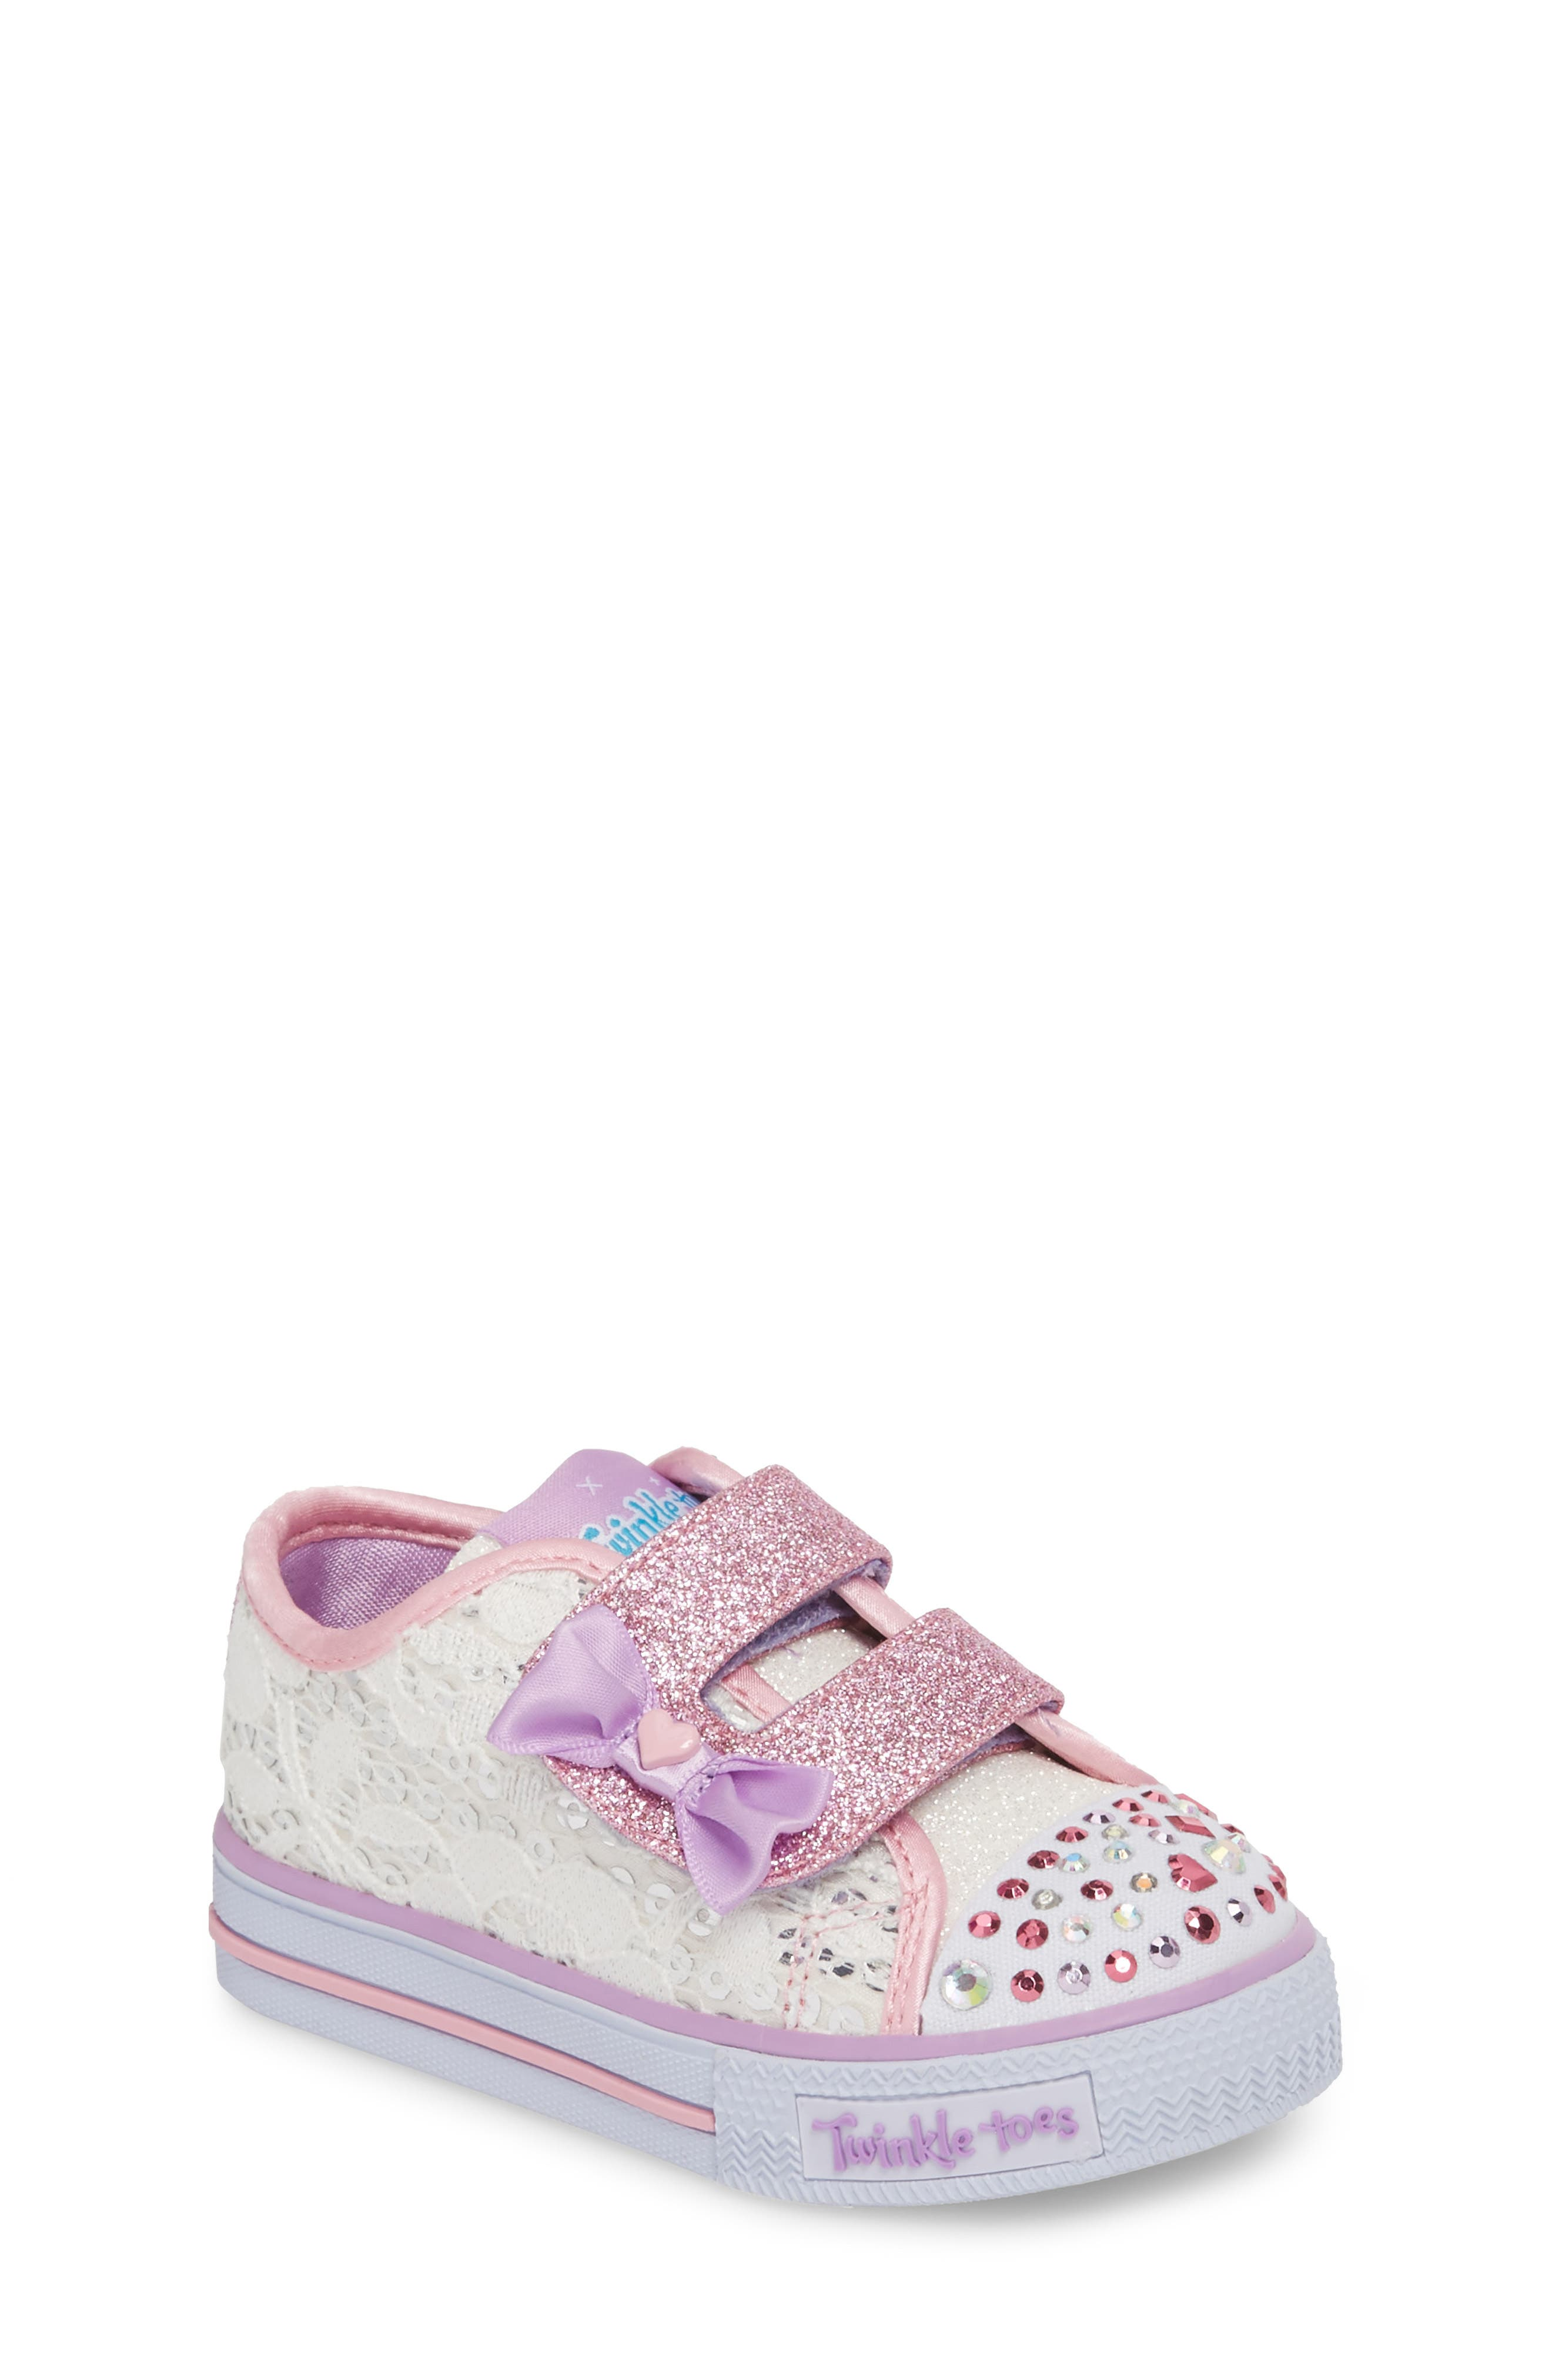 Twinkle Toes Shuffles Light-Up Glitter Sneaker,                             Main thumbnail 1, color,                             White/ Silver/ Light Pink